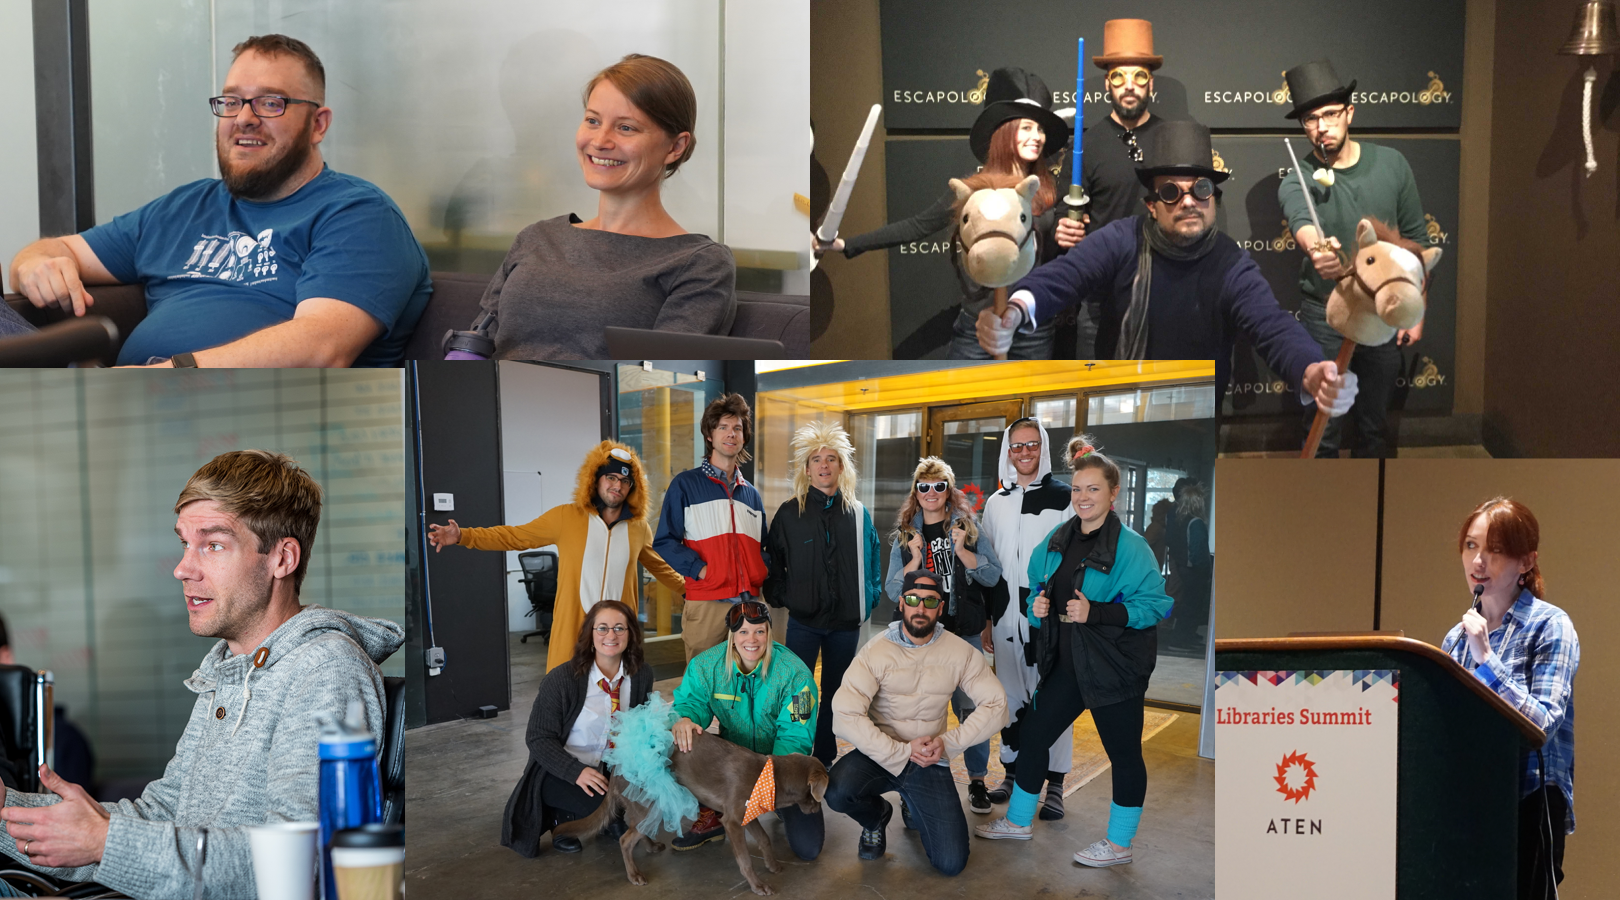 Photos of the Aten team at company summits, in Halloween costumes, and speaking at events.